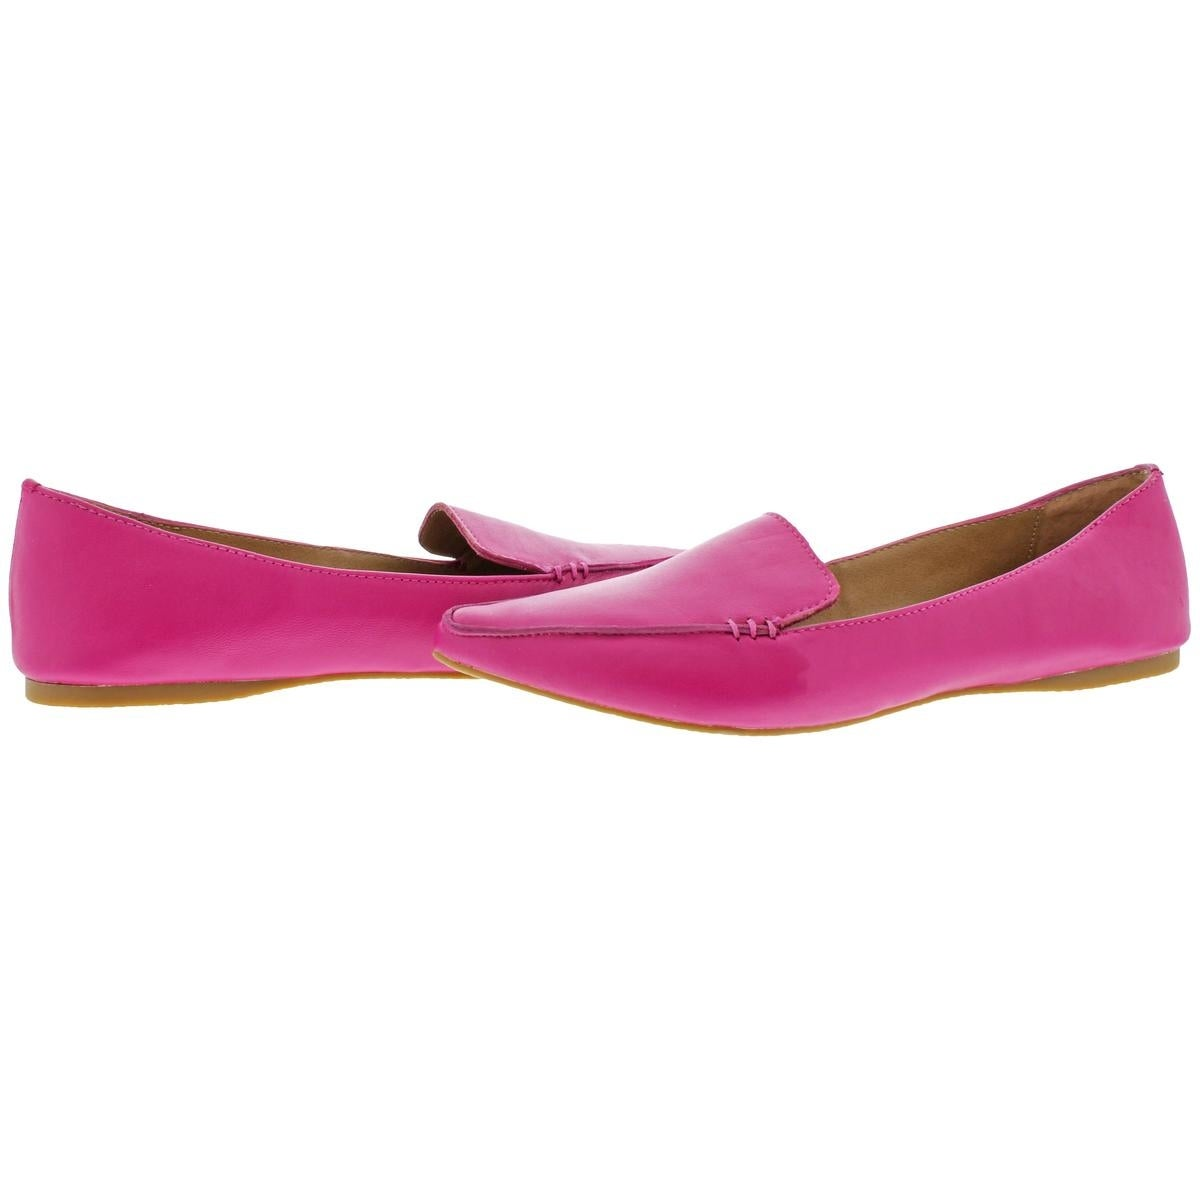 c22f06e4915 Shop Steve Madden Womens Feather Loafers - Ships To Canada - Overstock -  22819314